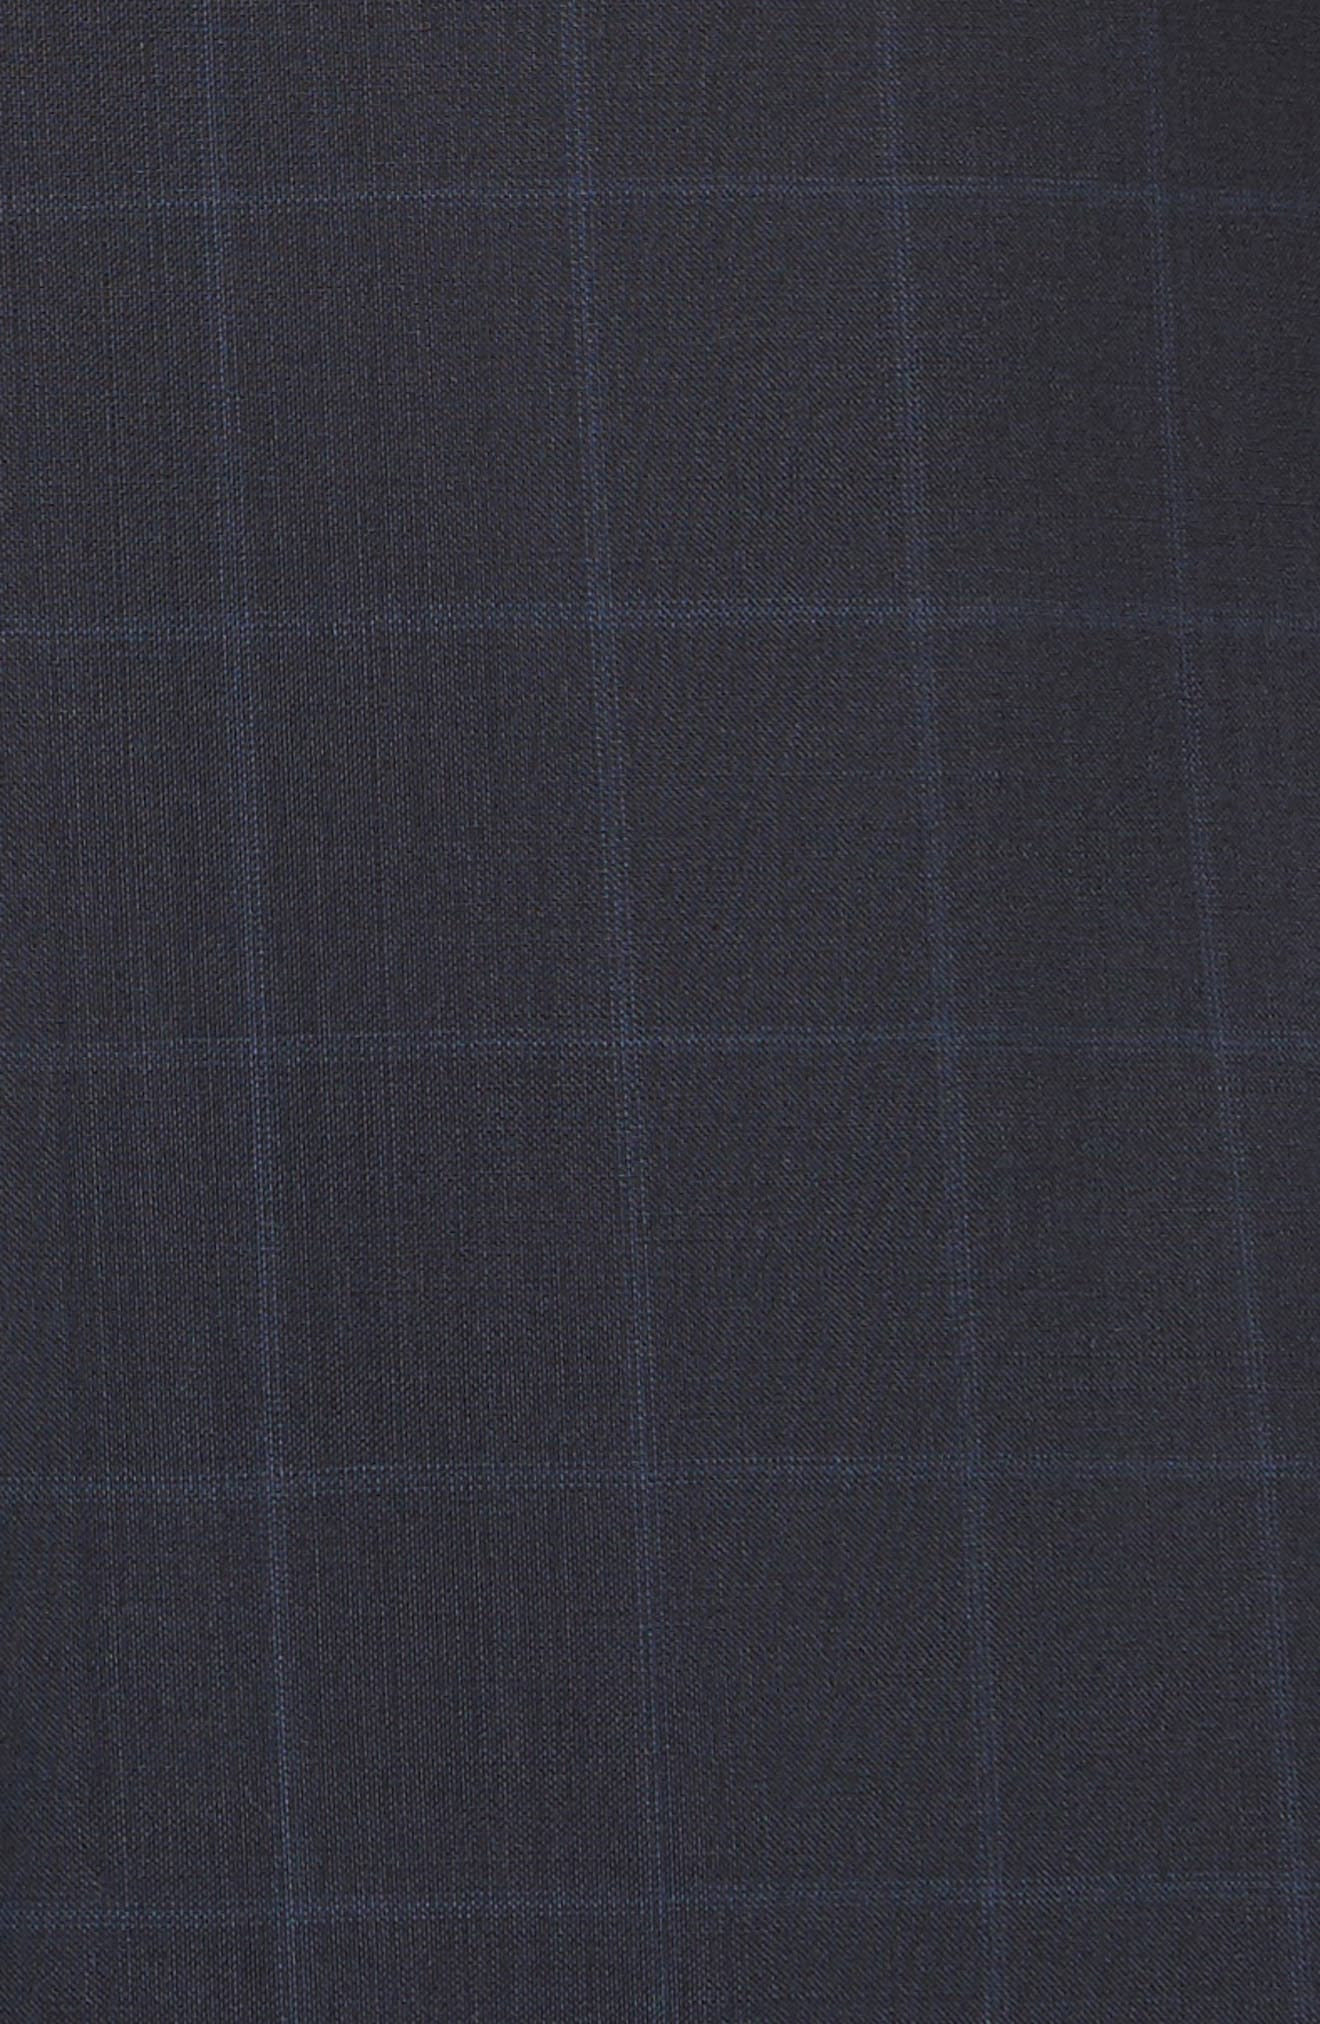 Classic Fit Windowpane Wool Suit,                             Alternate thumbnail 7, color,                             416